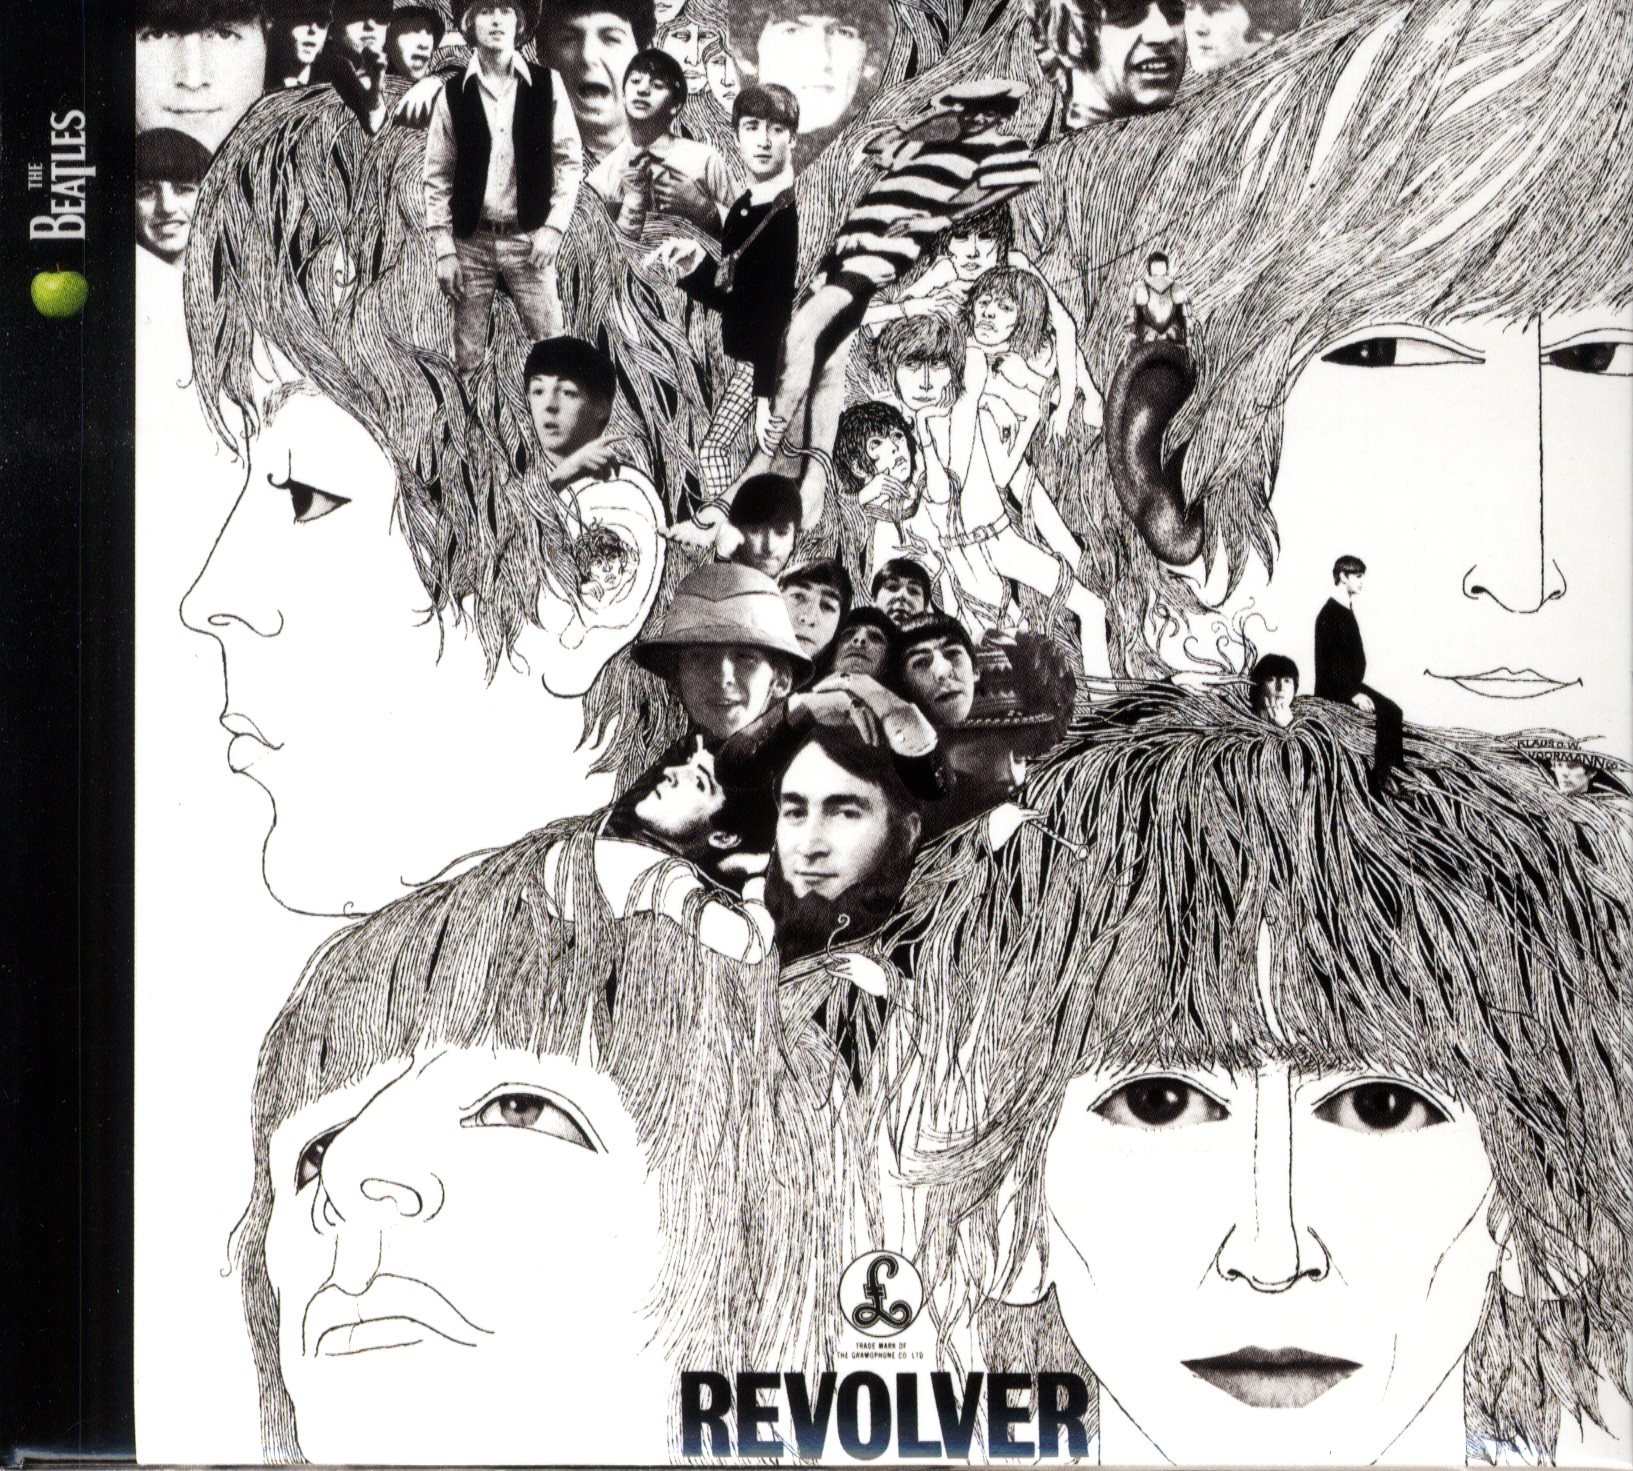 The Beatles – Revolver (REISSUE REMASTERED LP) (2018) [FLAC]